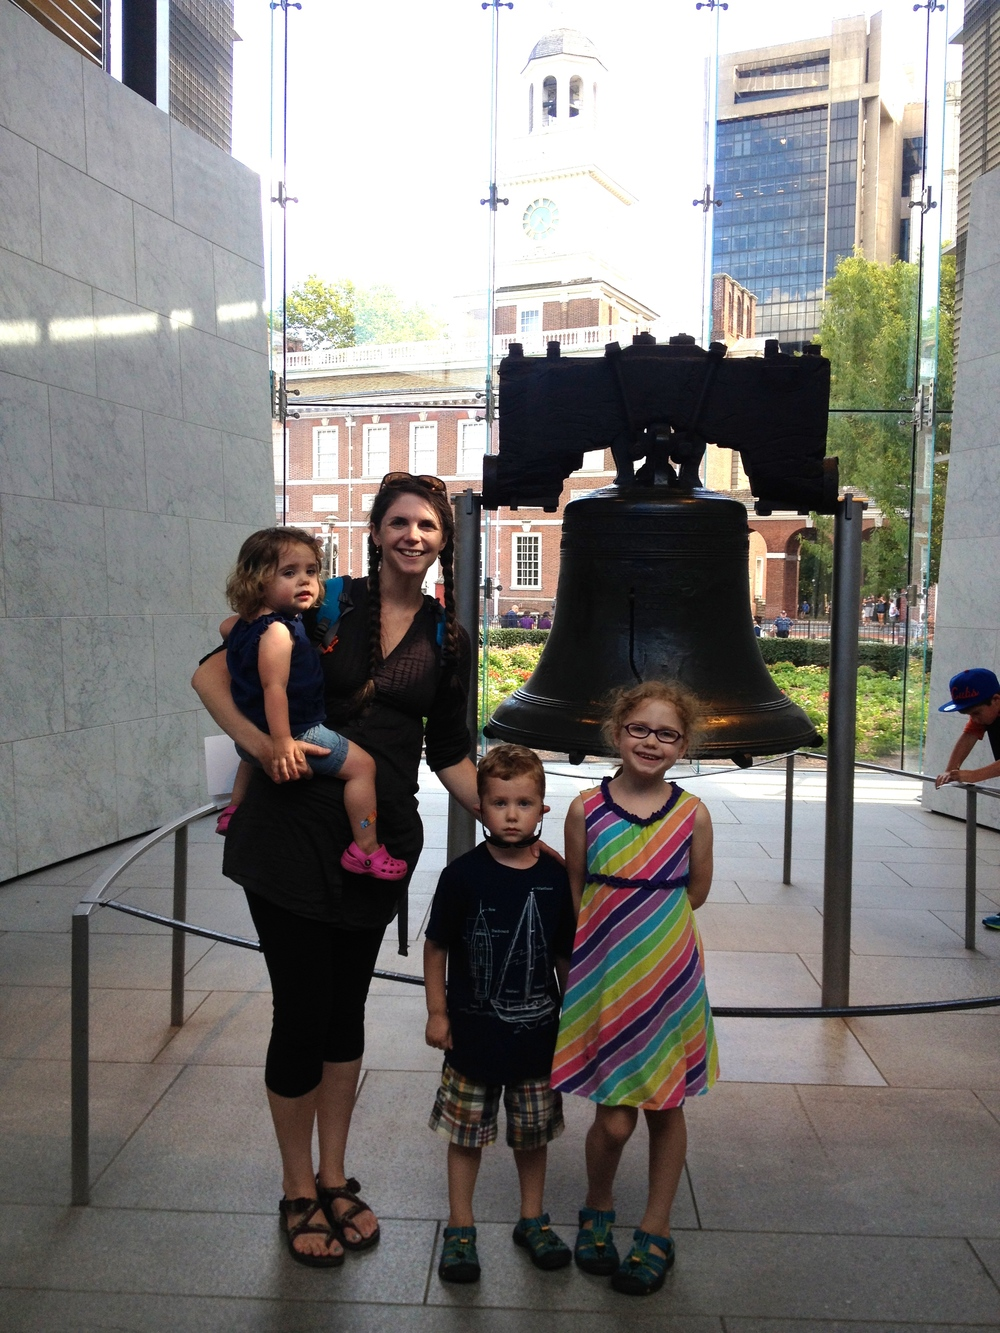 Finally got in to see the Liberty Bell :)